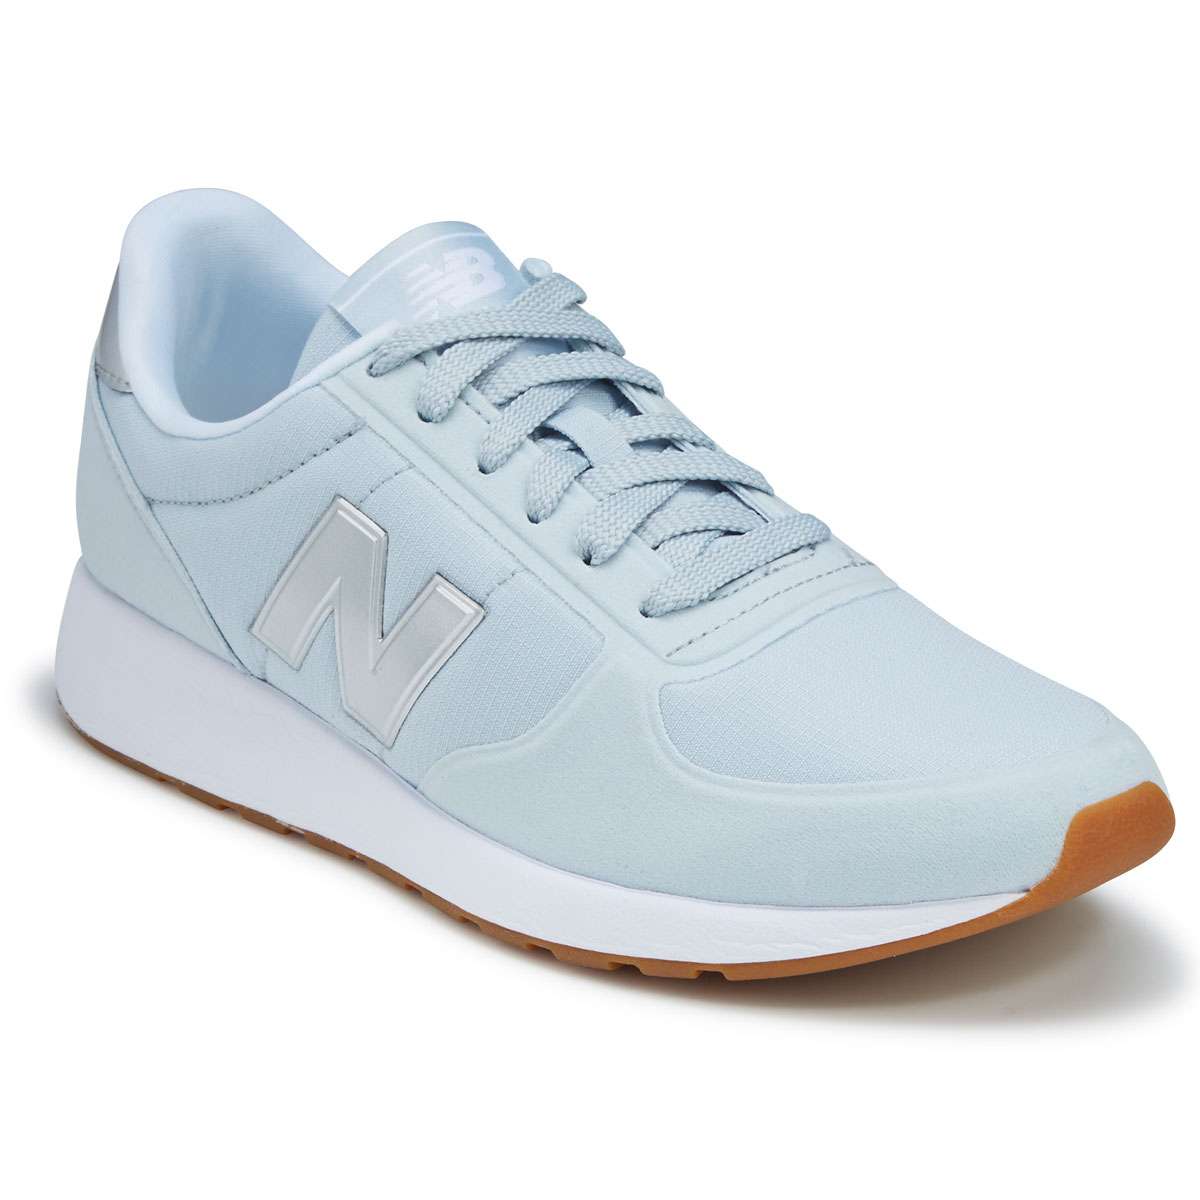 New Balance Women's 215V1 Sneakers - Blue, 8